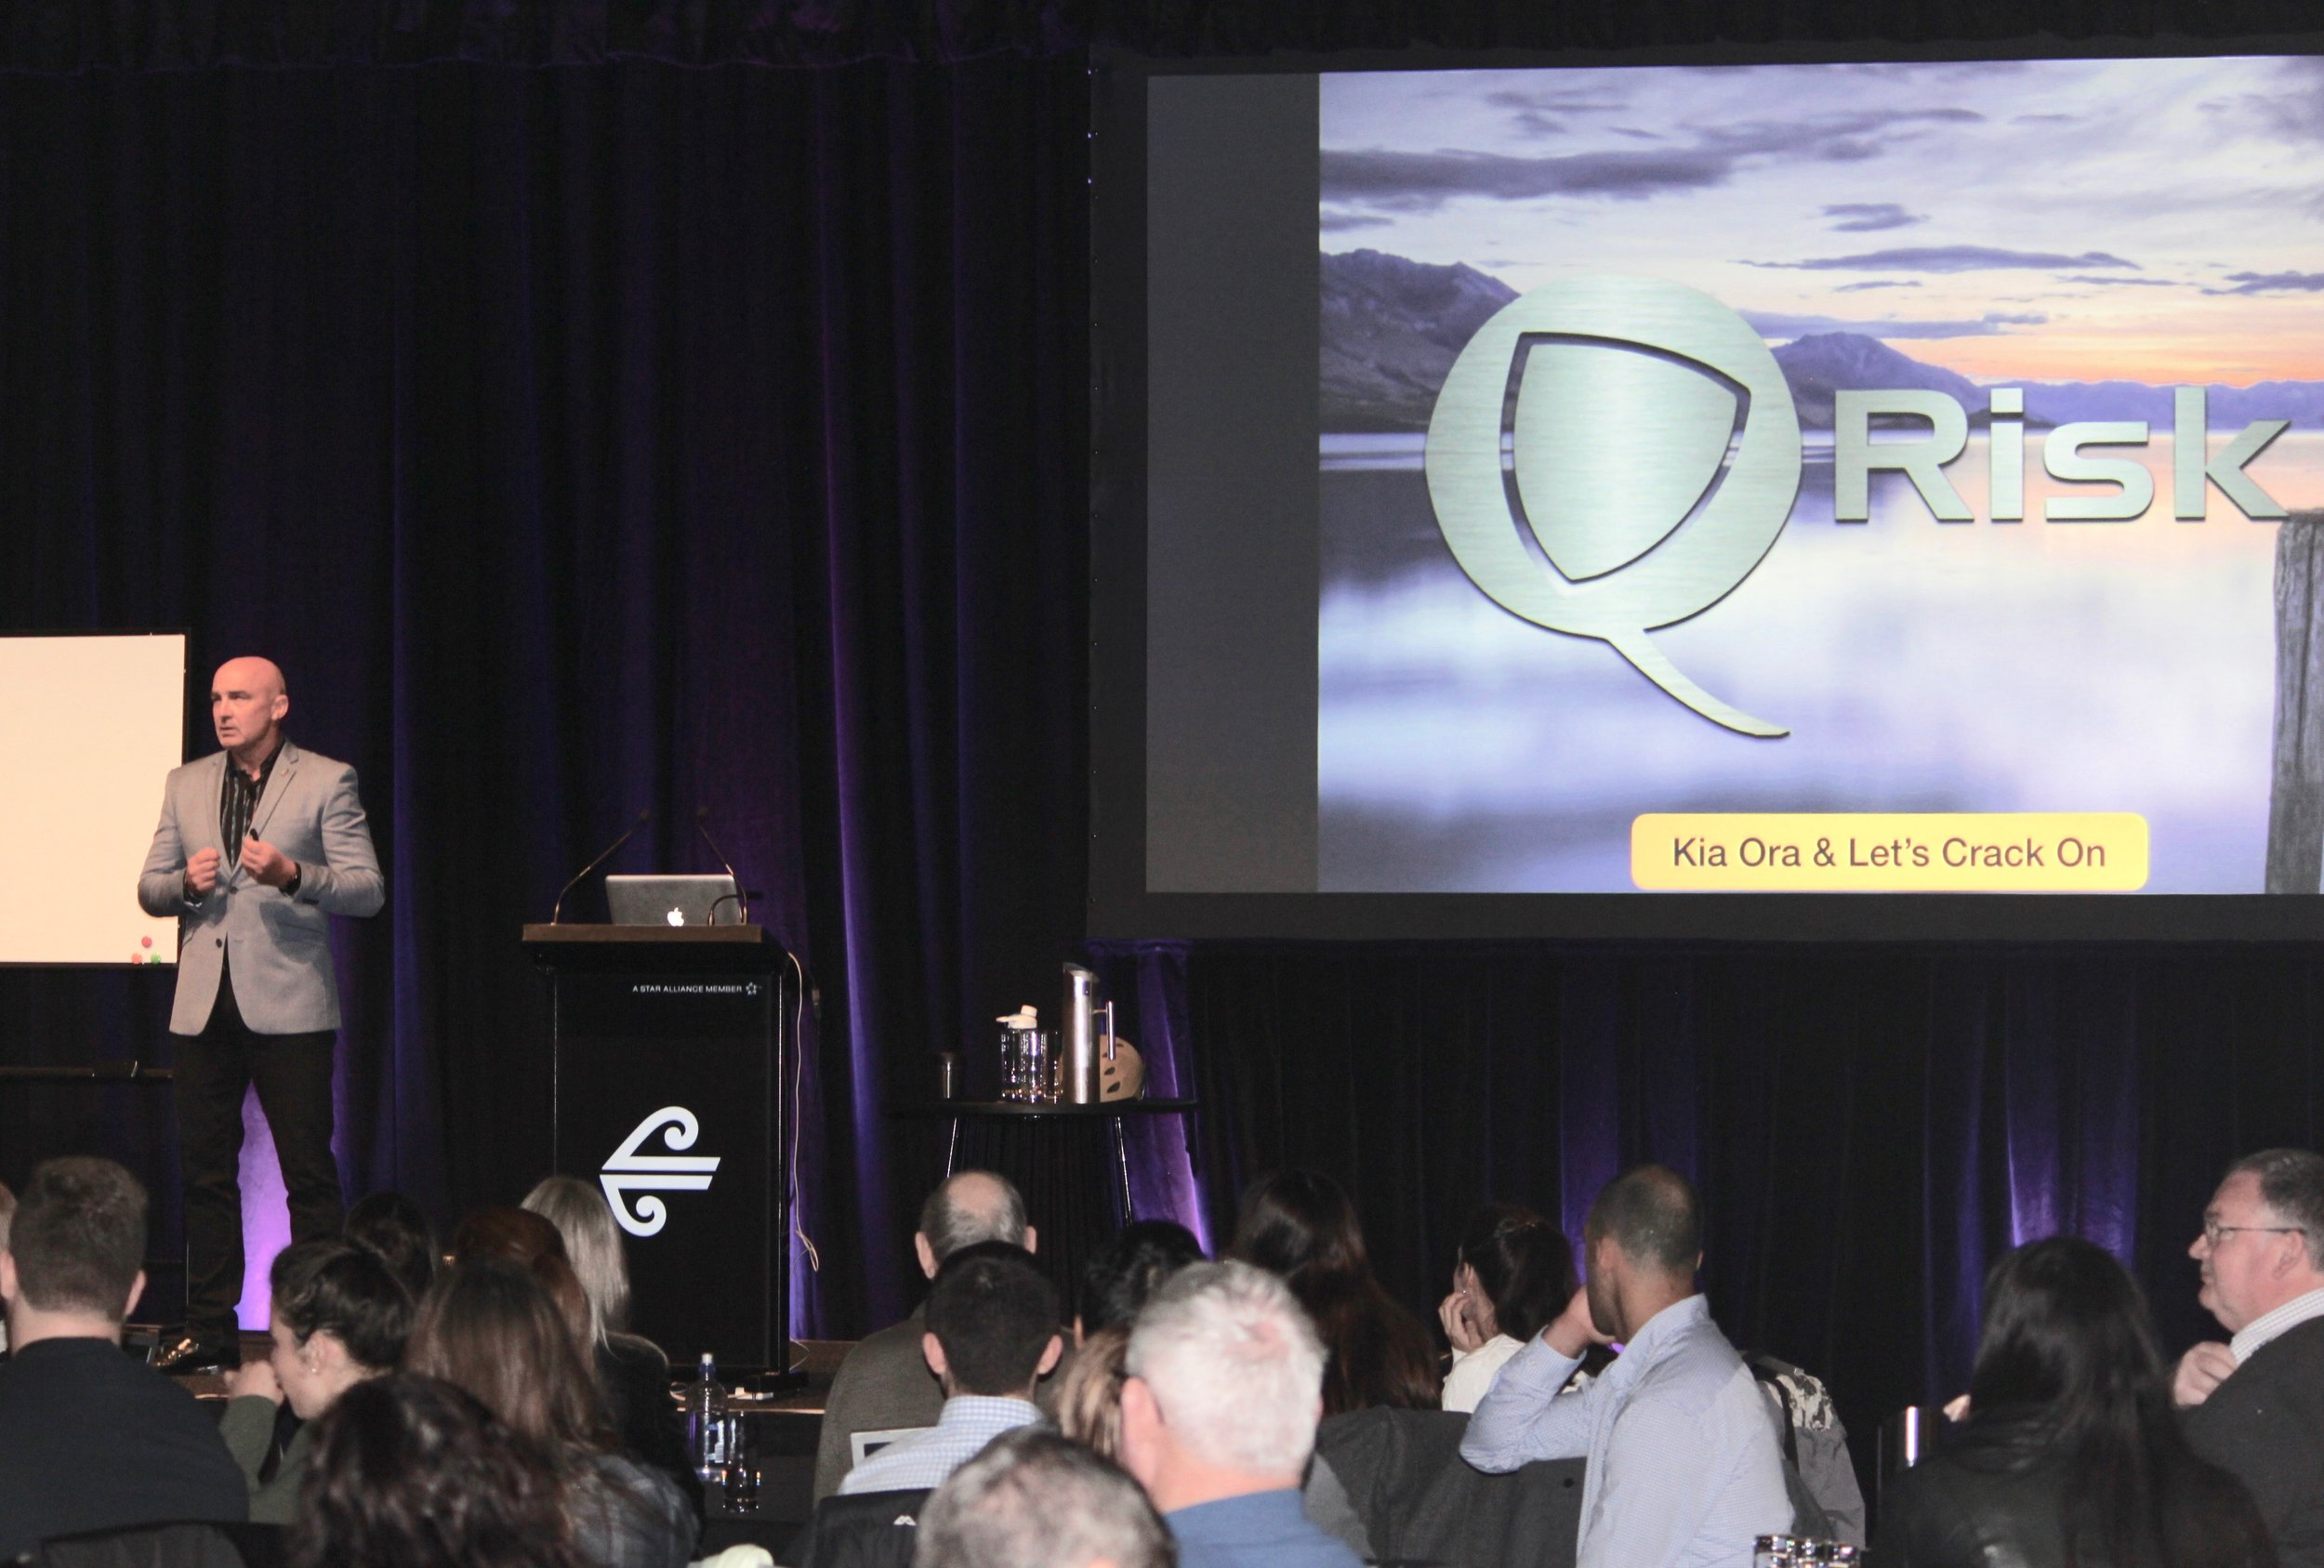 Presenting at the Air NZ Health & Safety Forum 2018